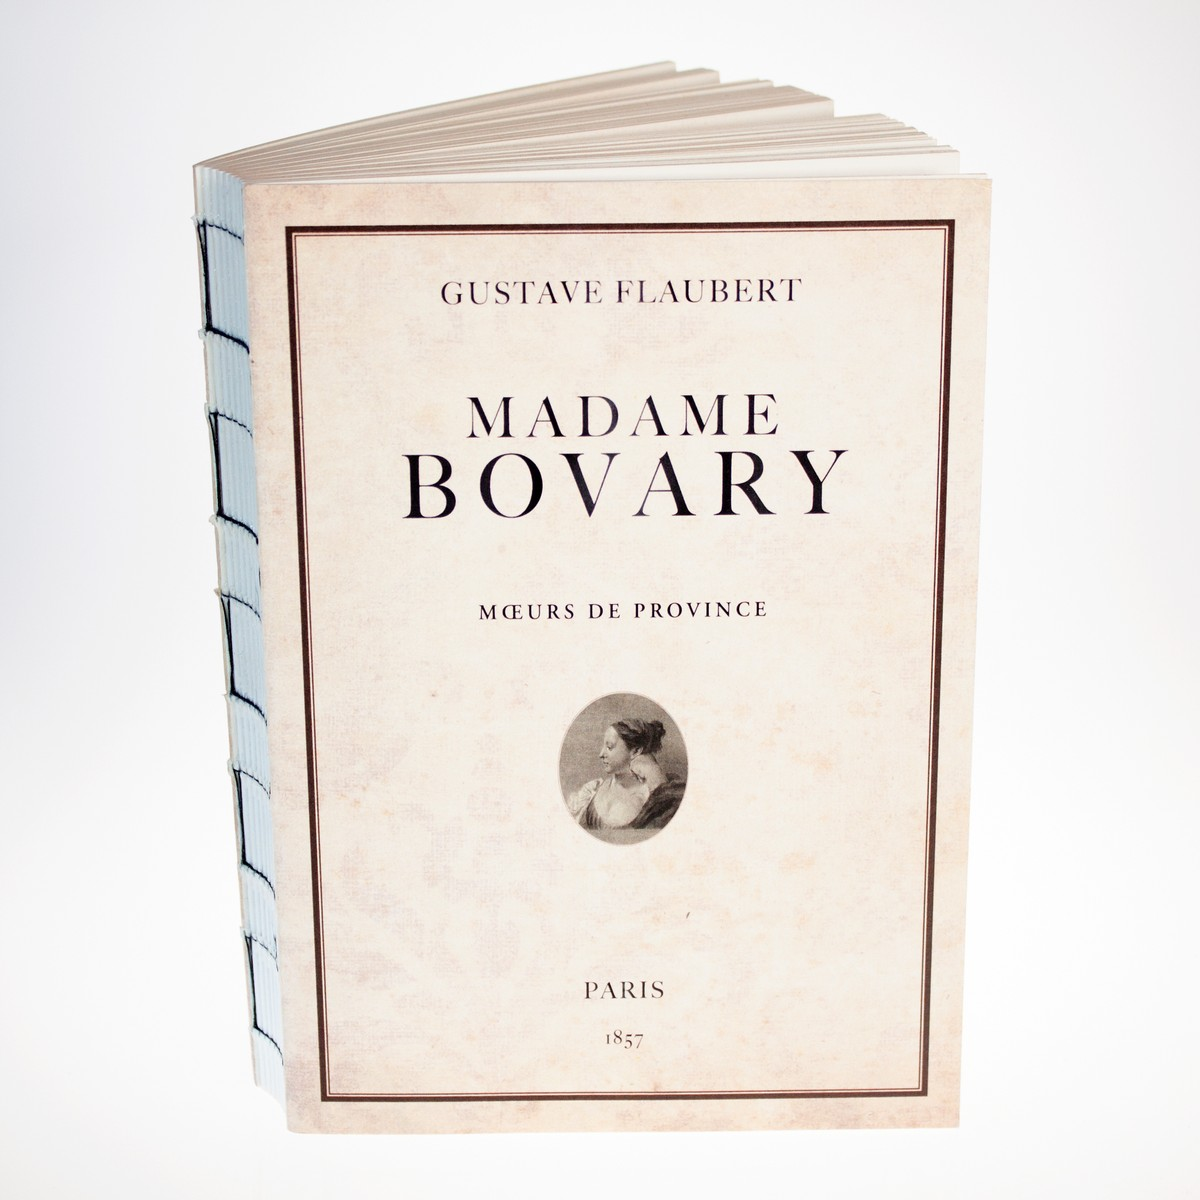 Photo of Madame Bovary Notebook